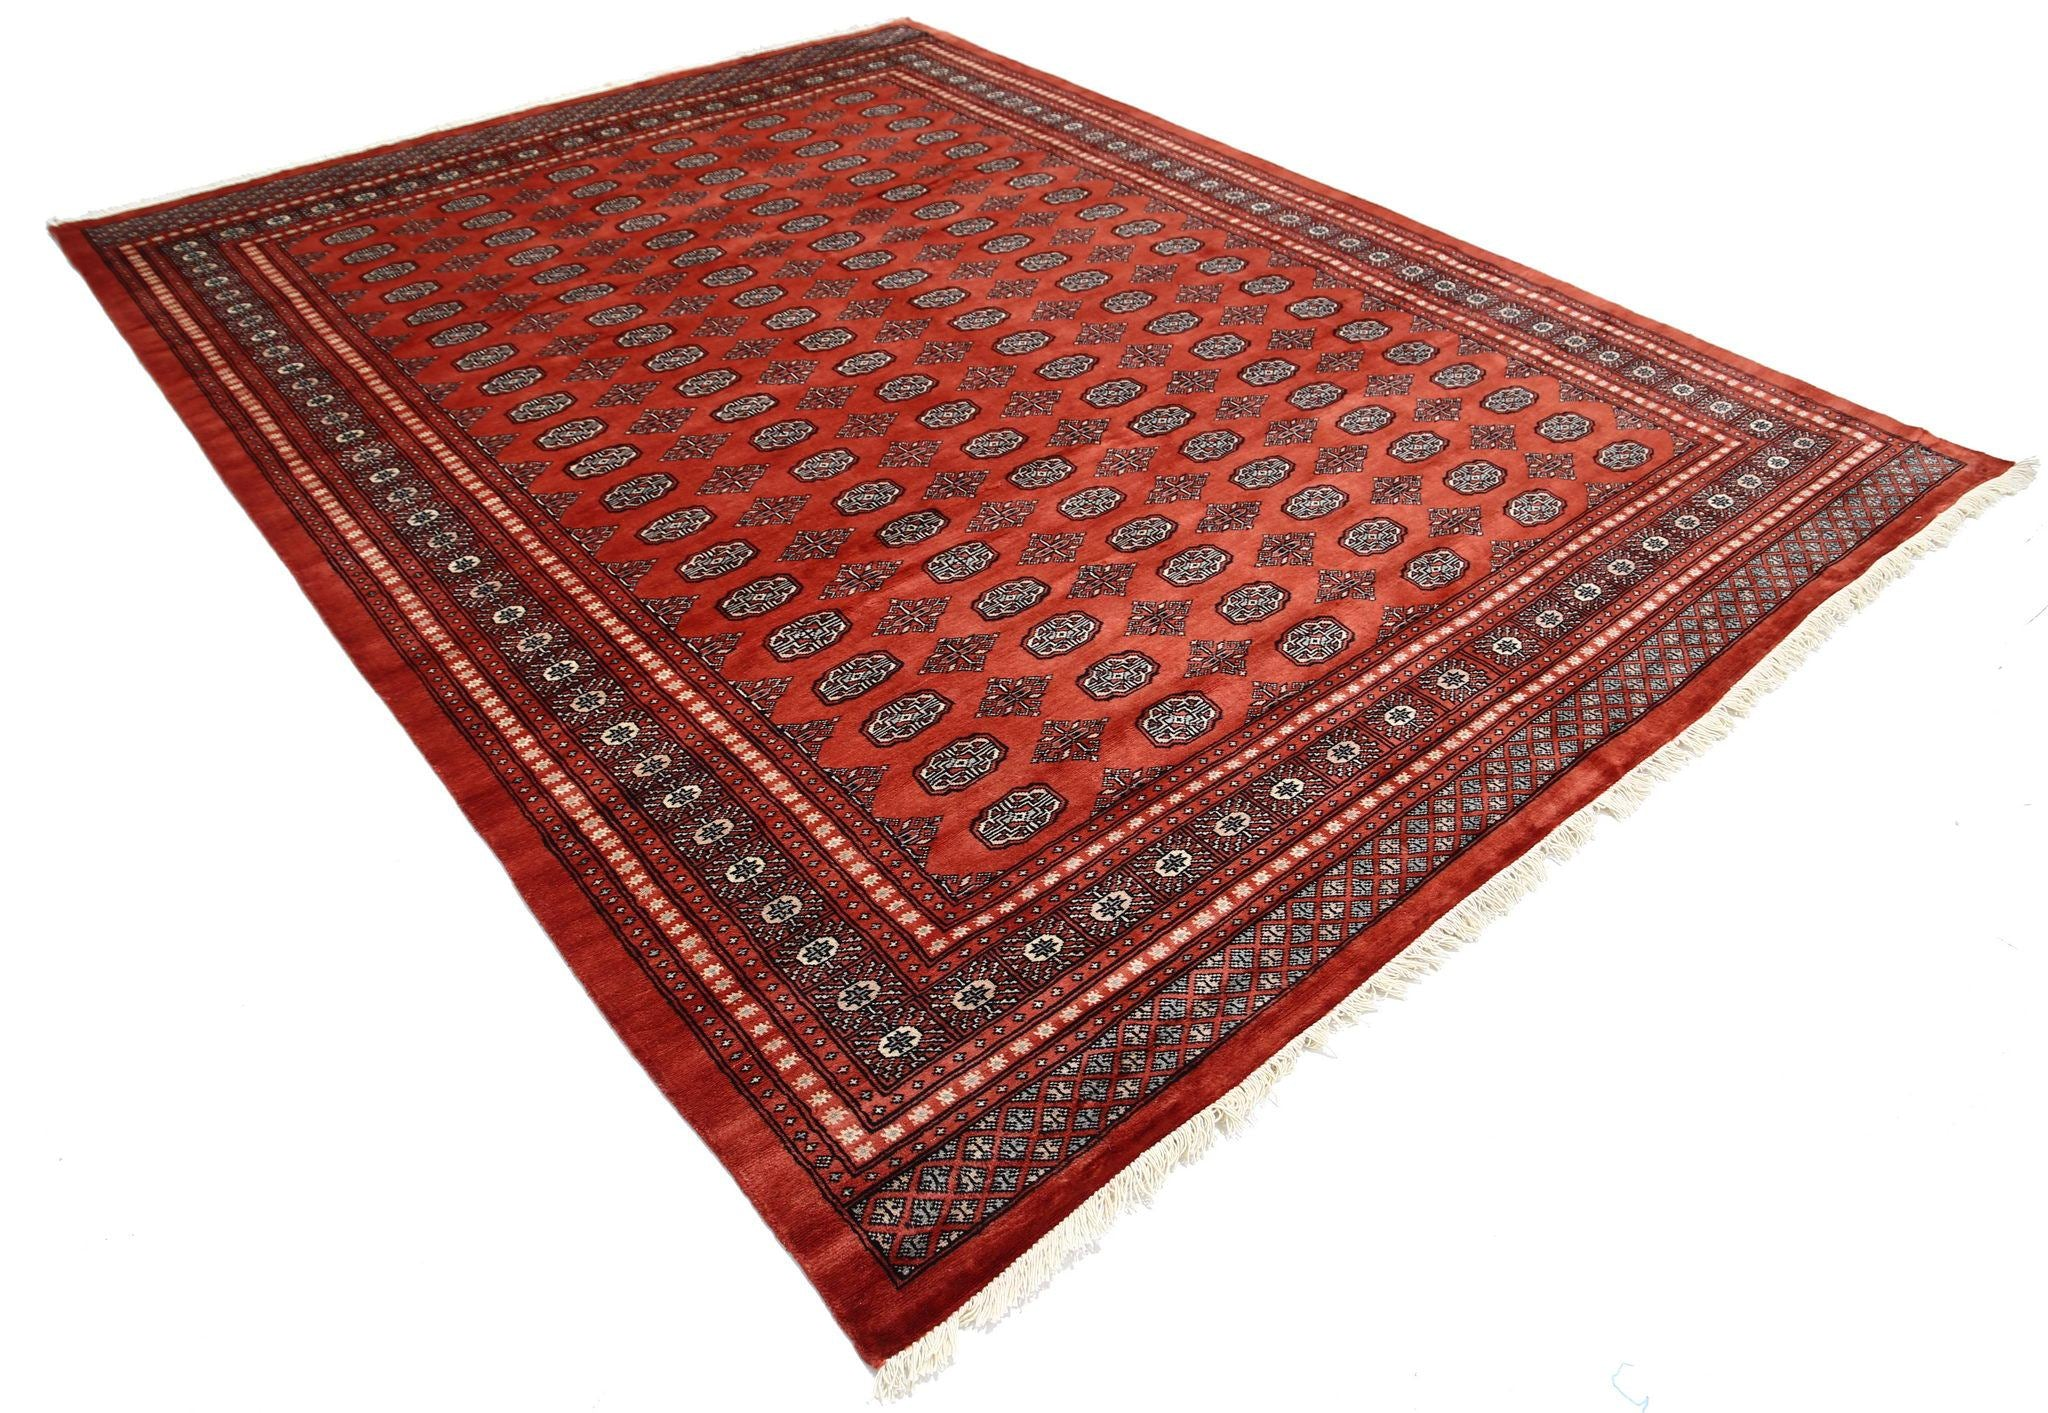 Handmade Rugs, Carpet Culture Rugs, New Rugs, Bokhara Rugs